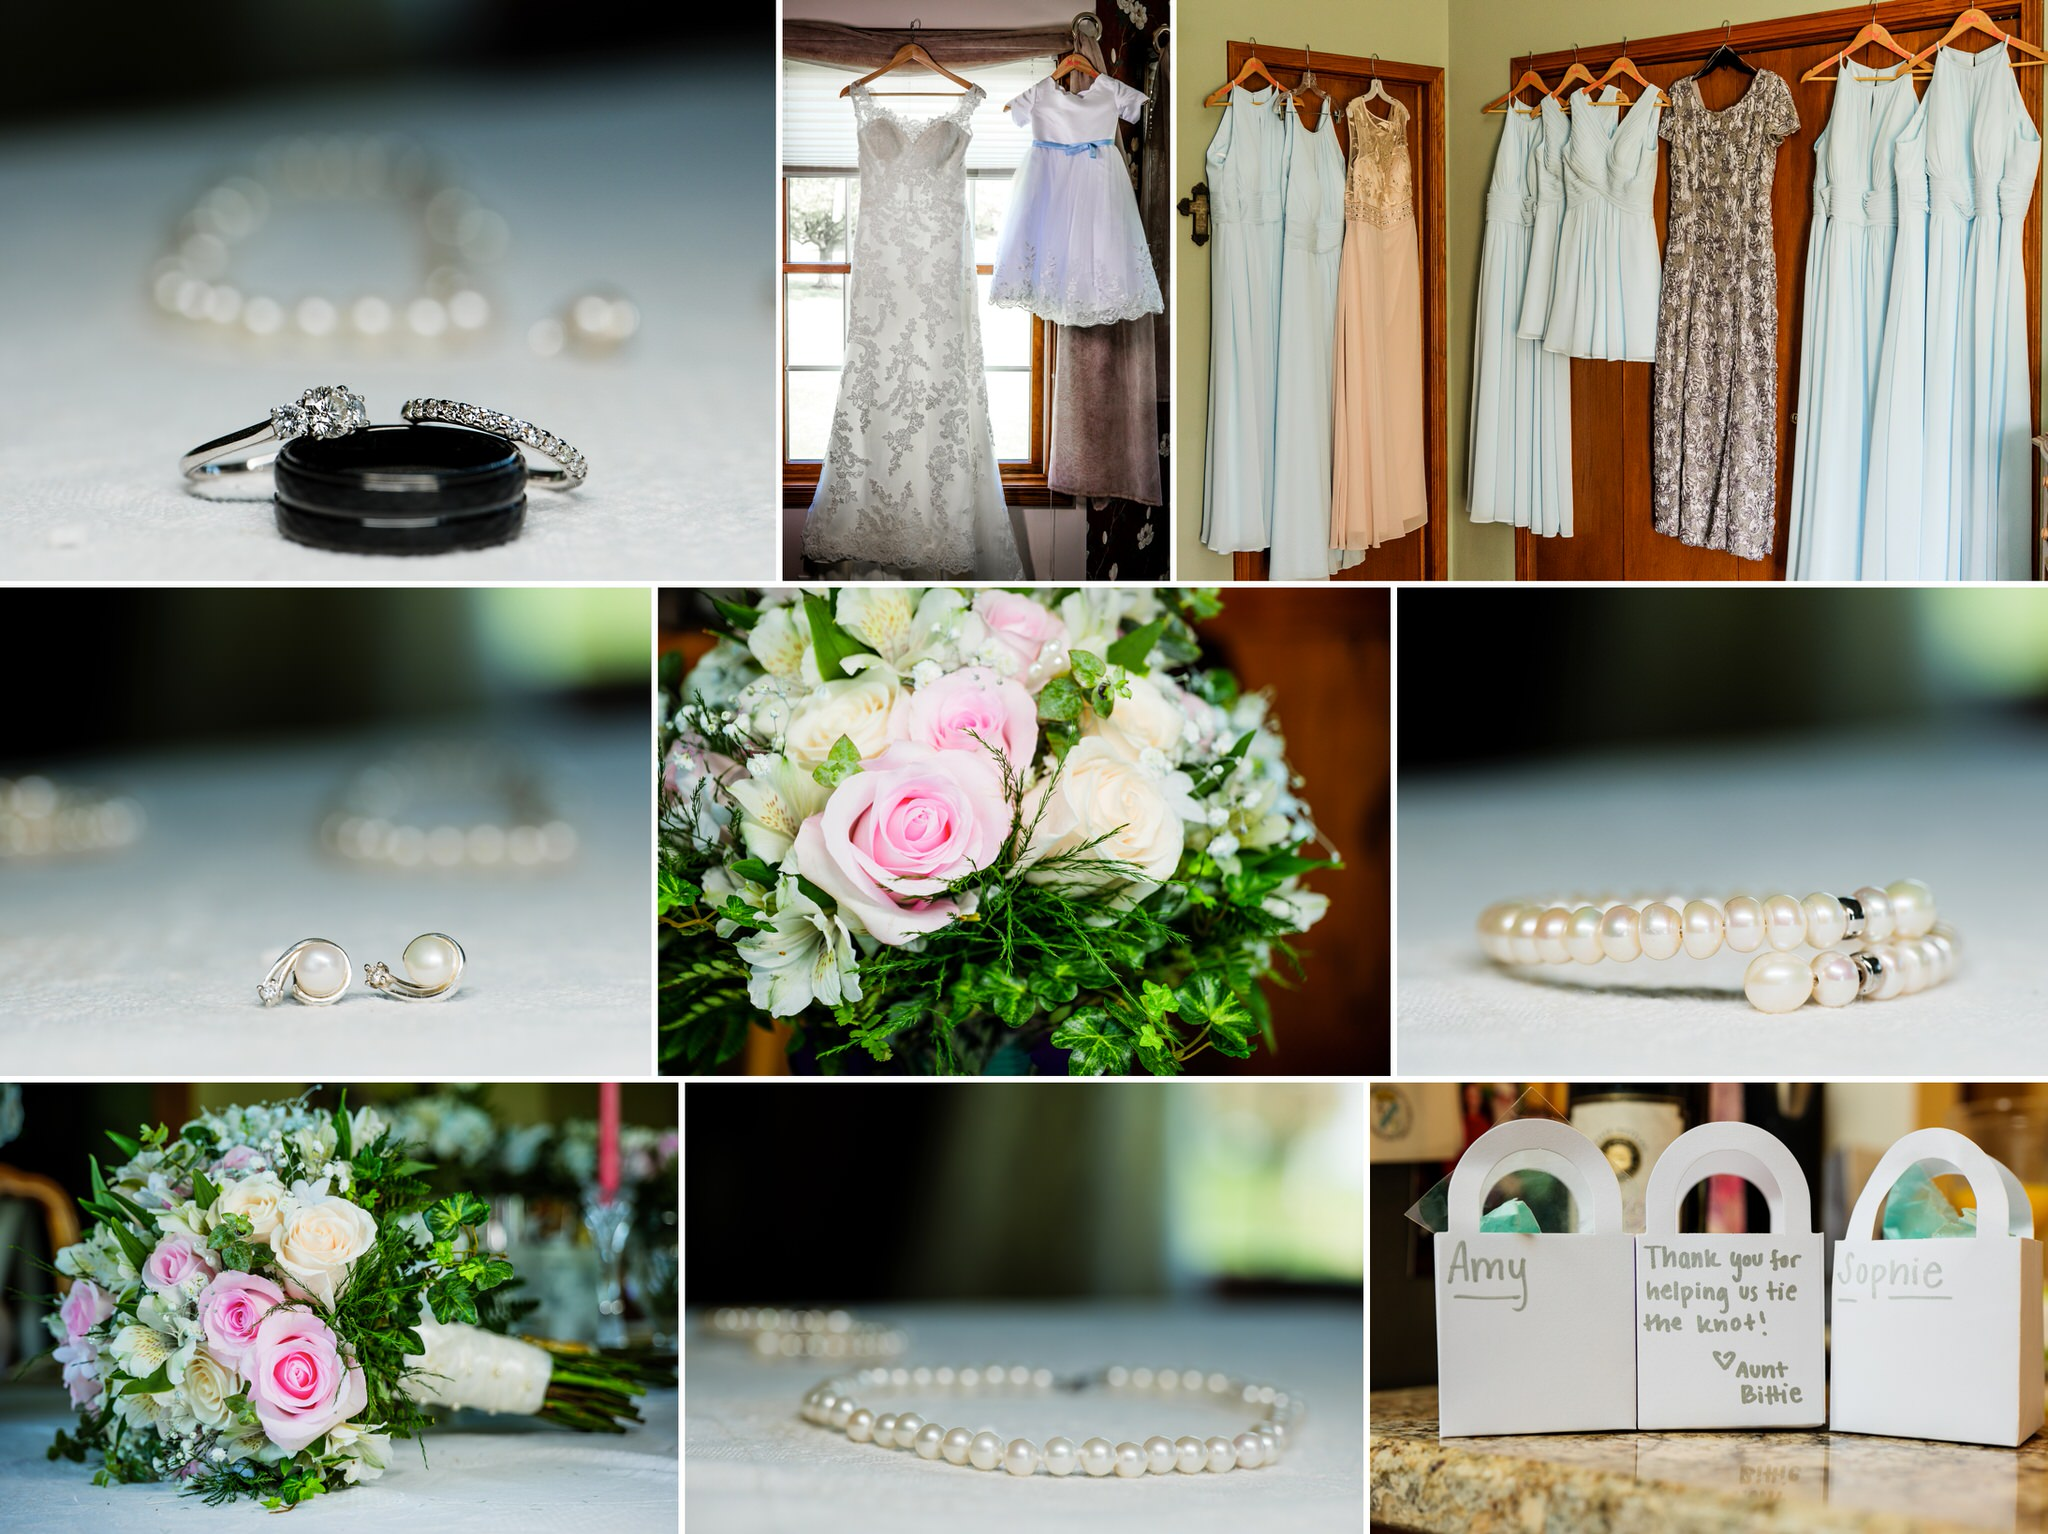 Bridal details at a Spring wedding in Crown Point, Indiana.